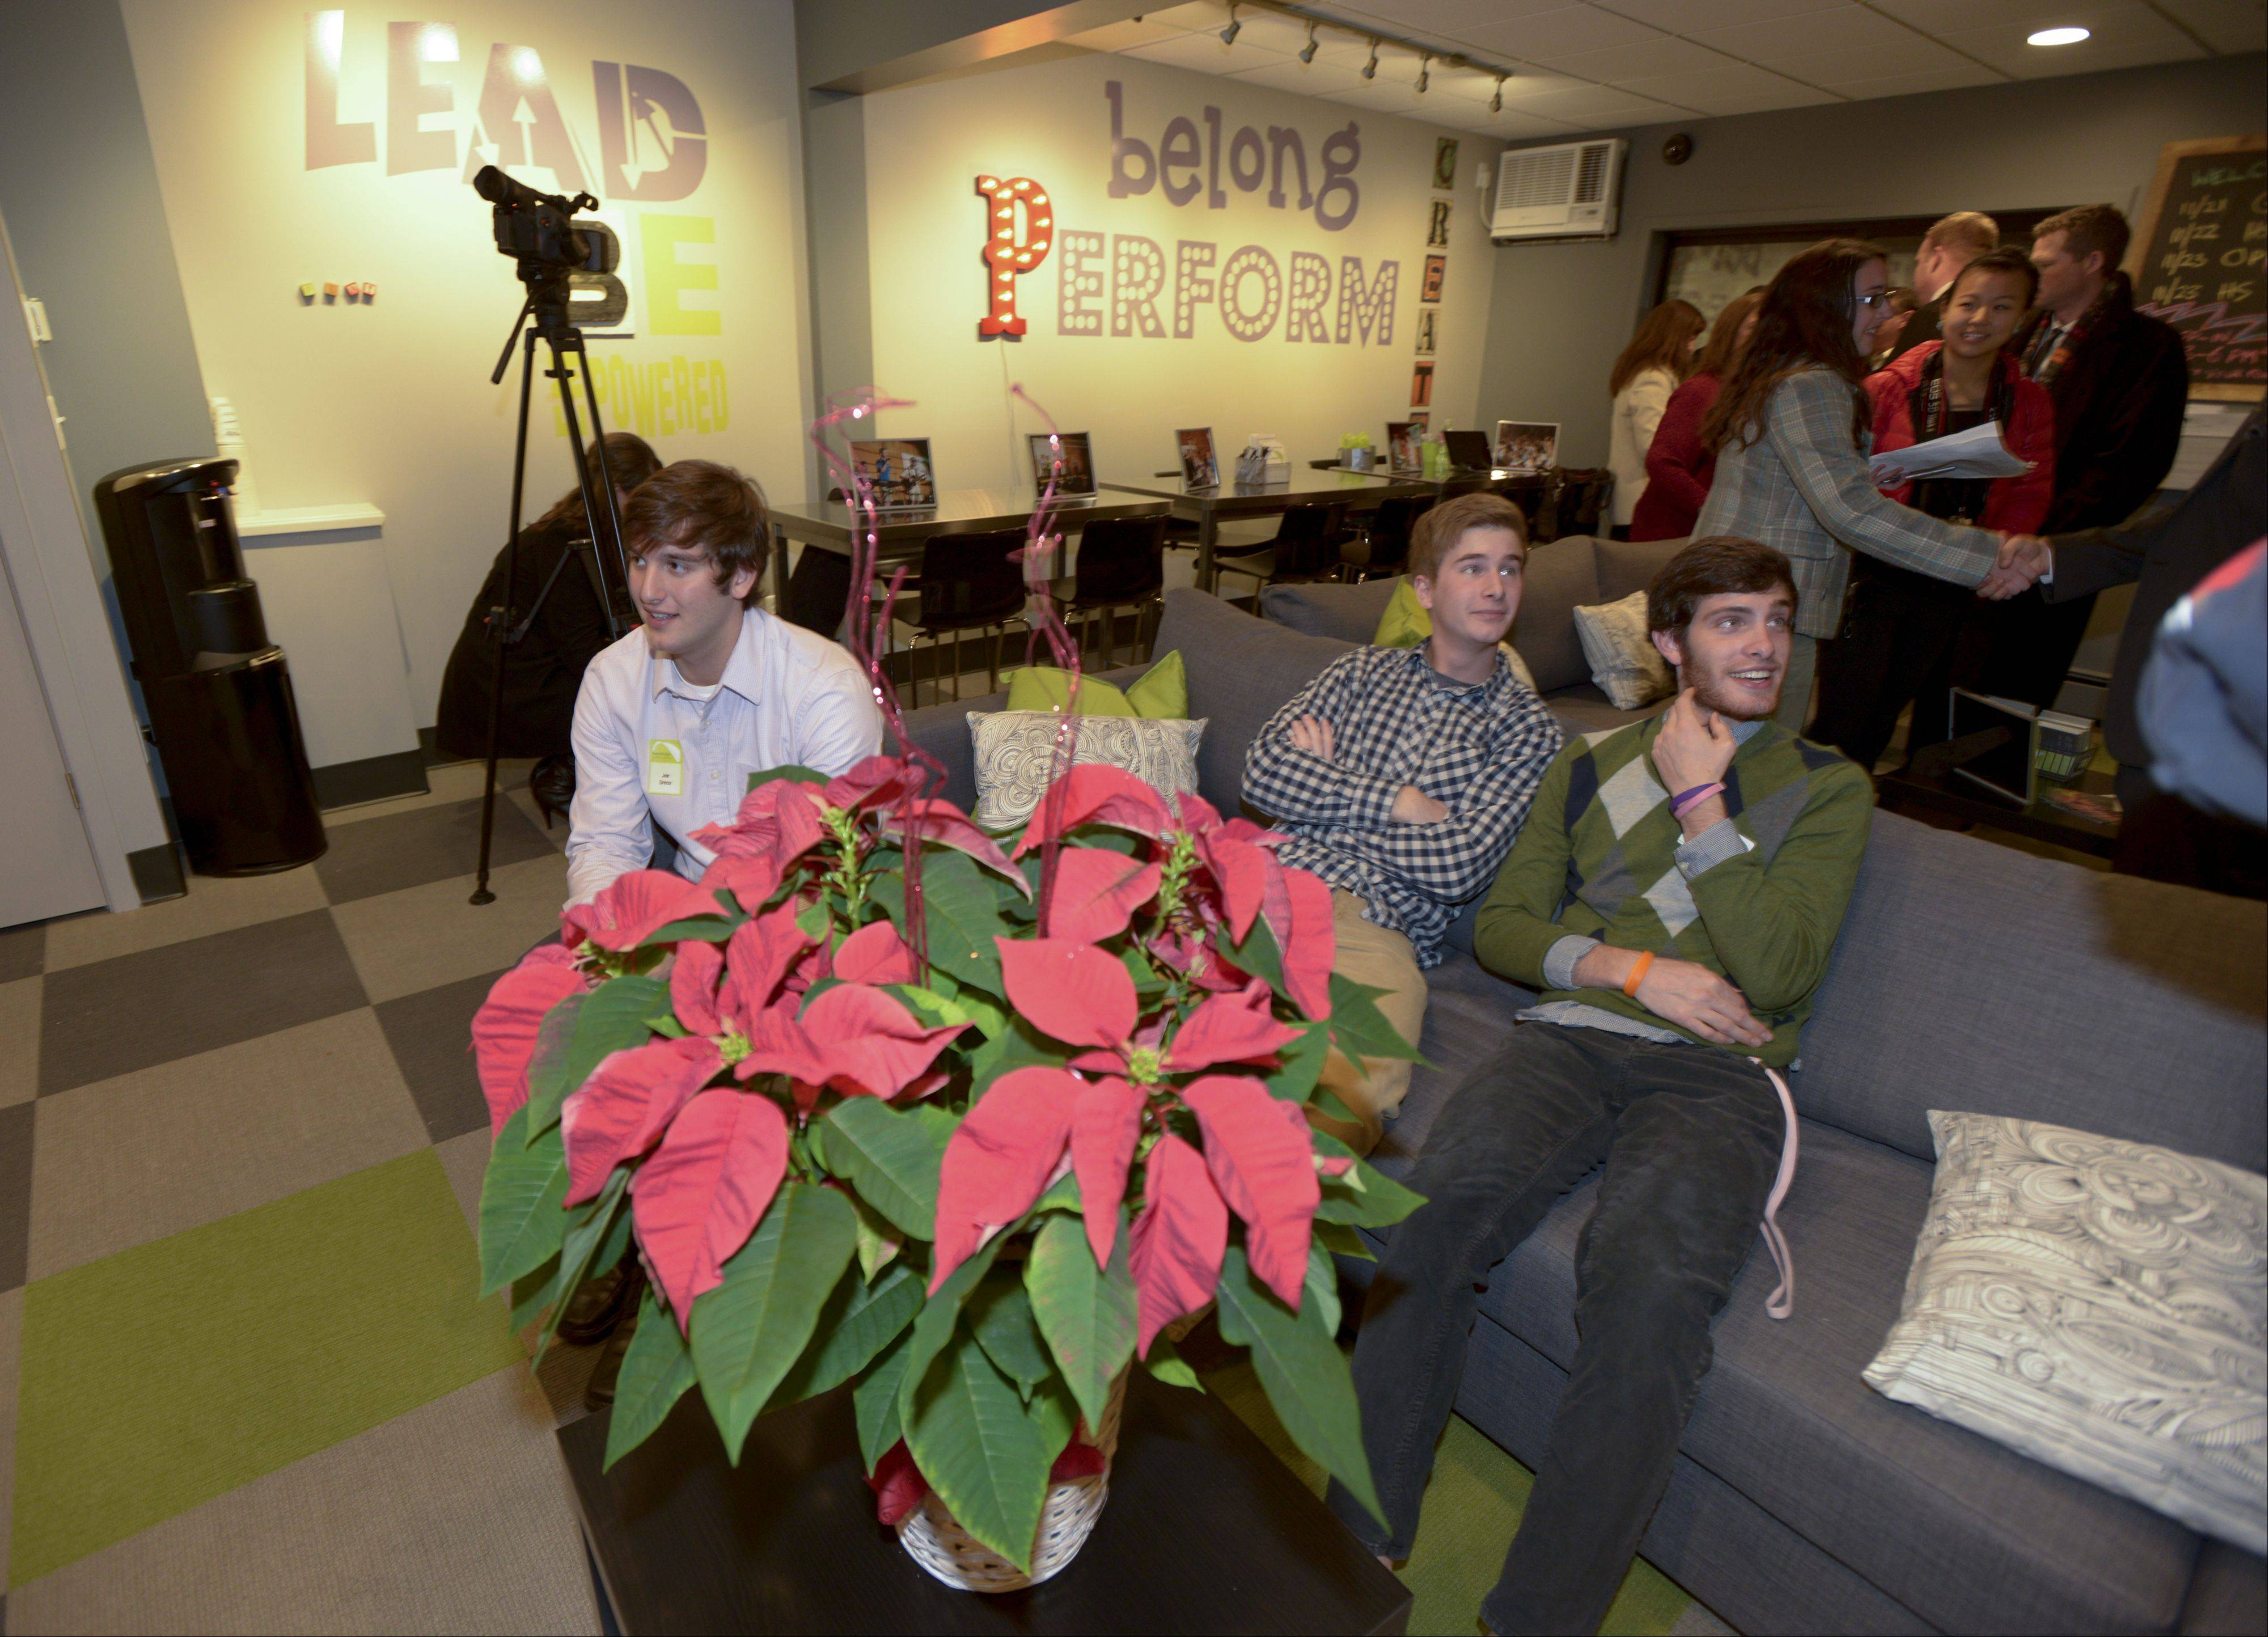 Joey Greco, Ethan Rader and Michael Drake try out the couches in the new NaperBridge teen center.